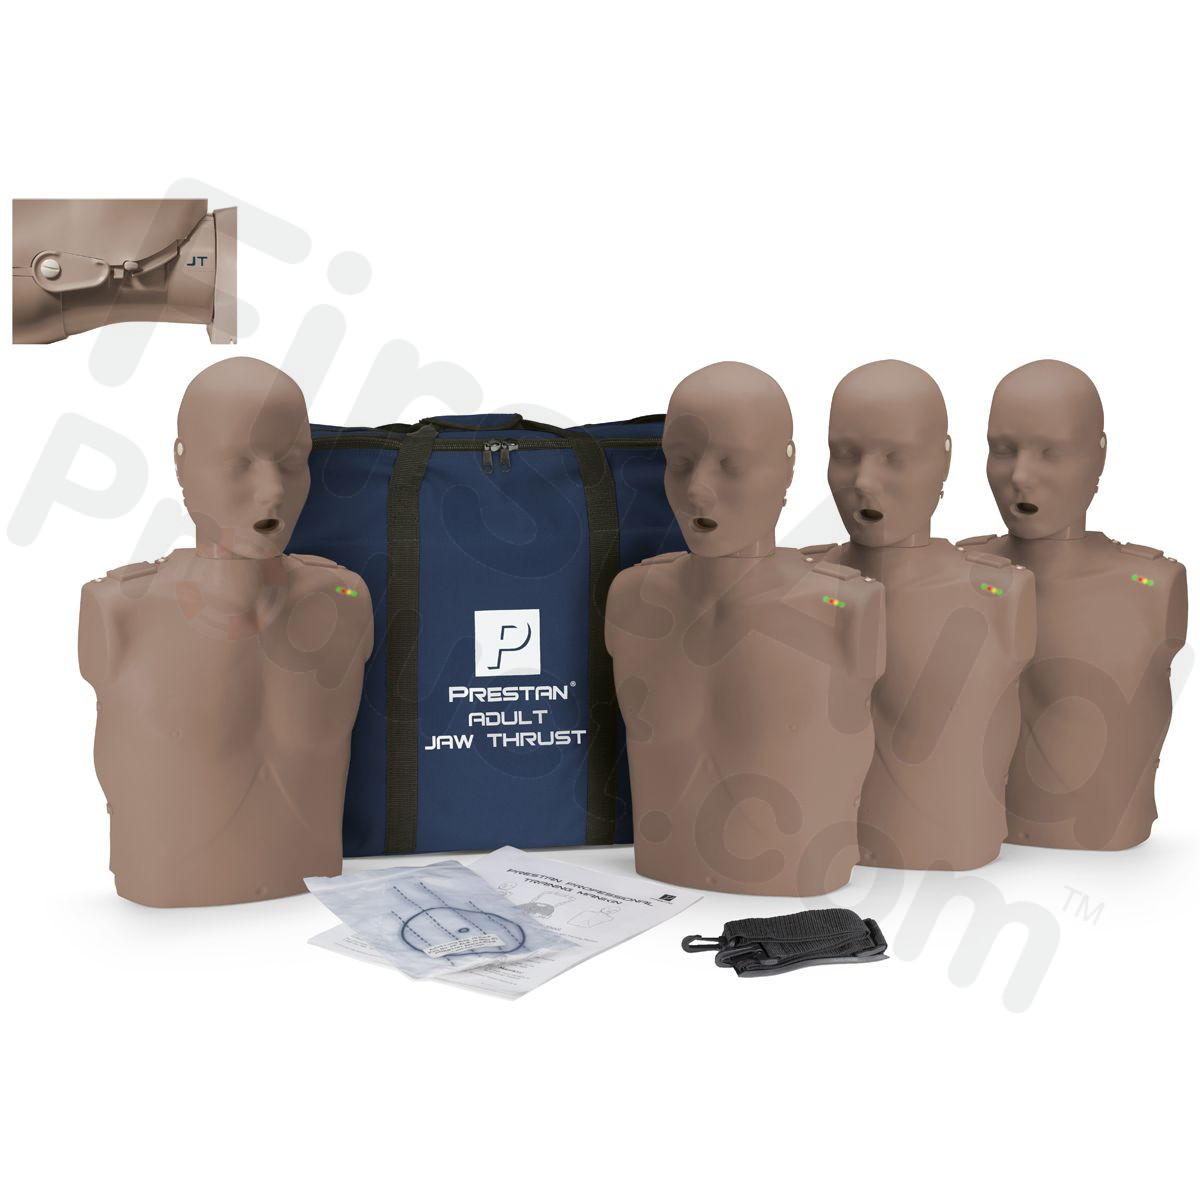 bcd89ae1e10 First-Aid-Product.com: Prestan Adult Jaw Thrust CPR-AED Training ...